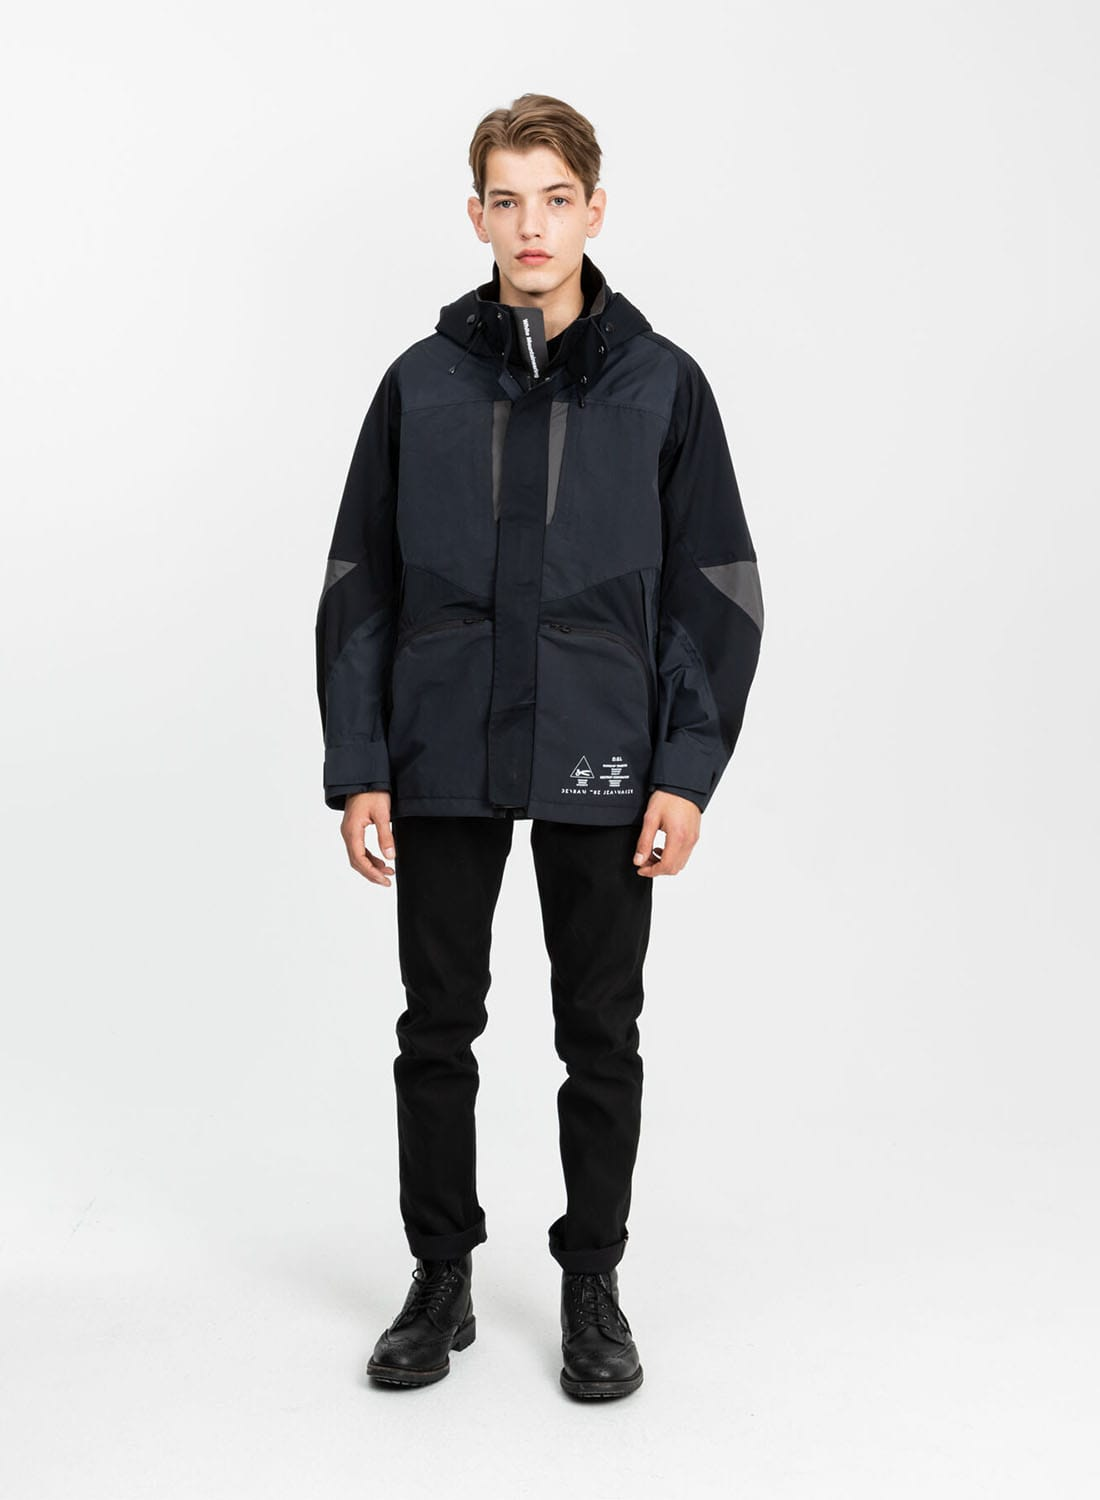 【DENHAM × White Mountaineering】 WM SAITOS MOUNTAIN